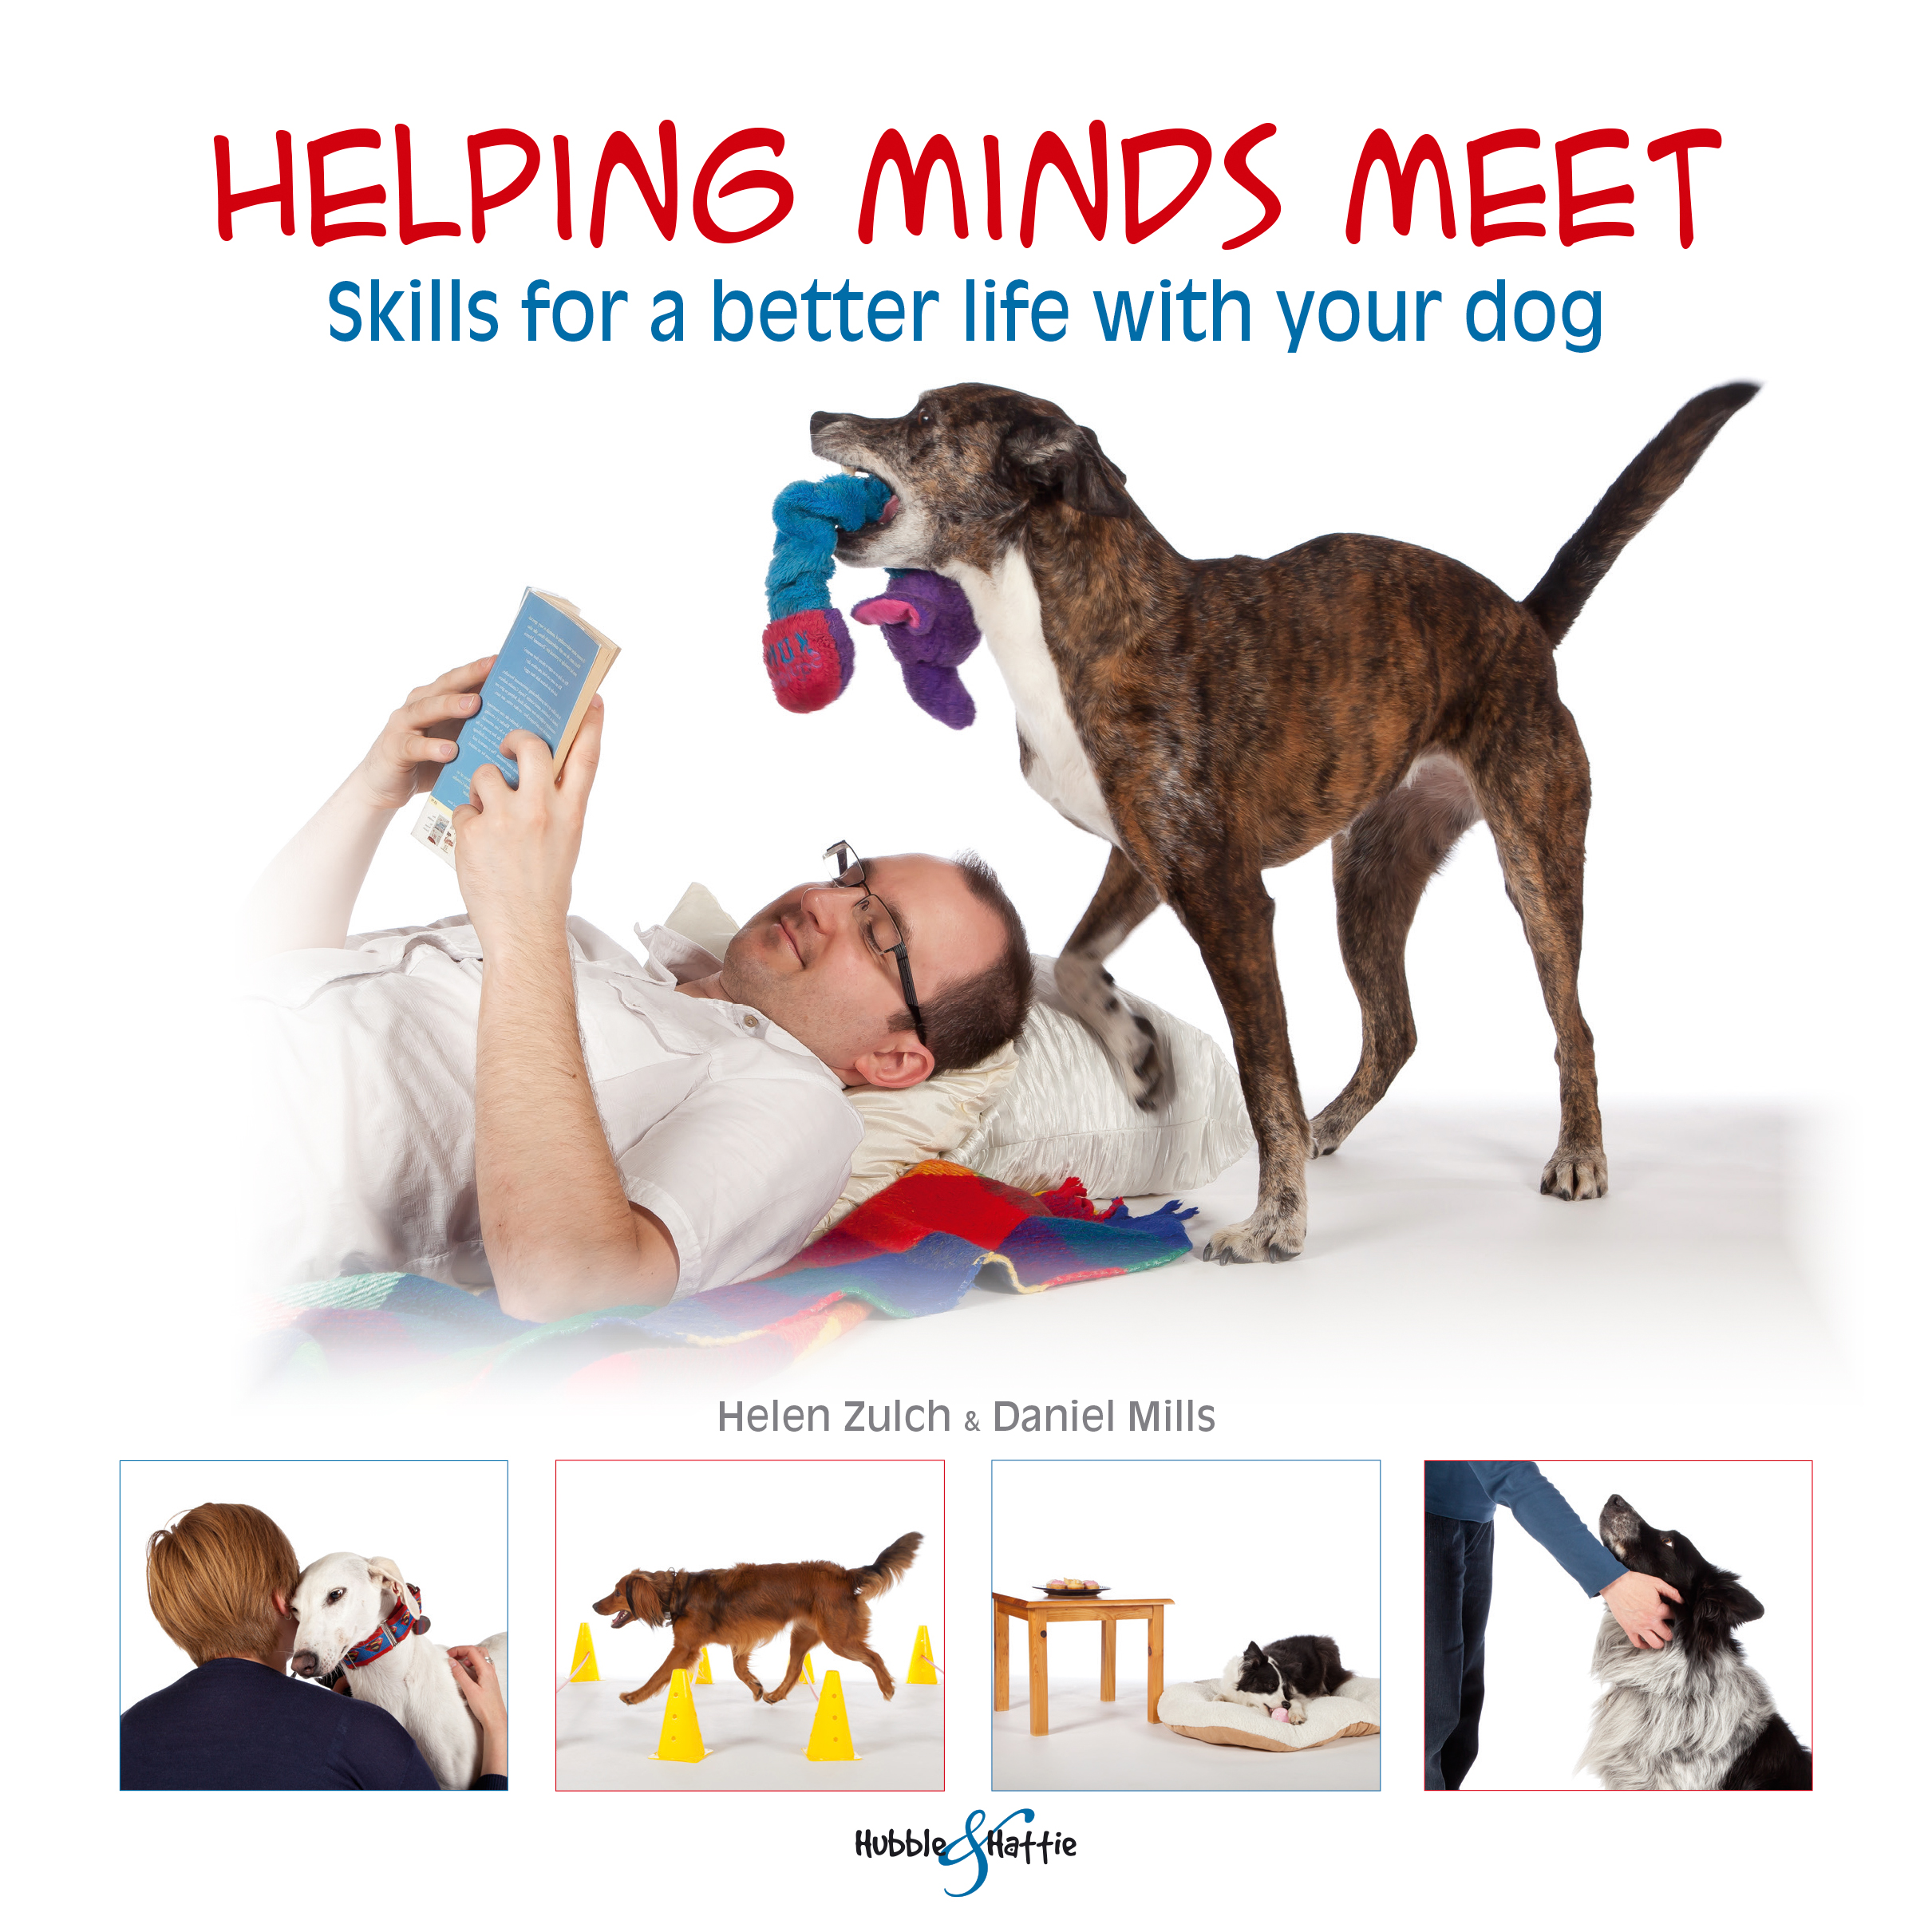 Helping minds meet –Skills for a better life with your dog